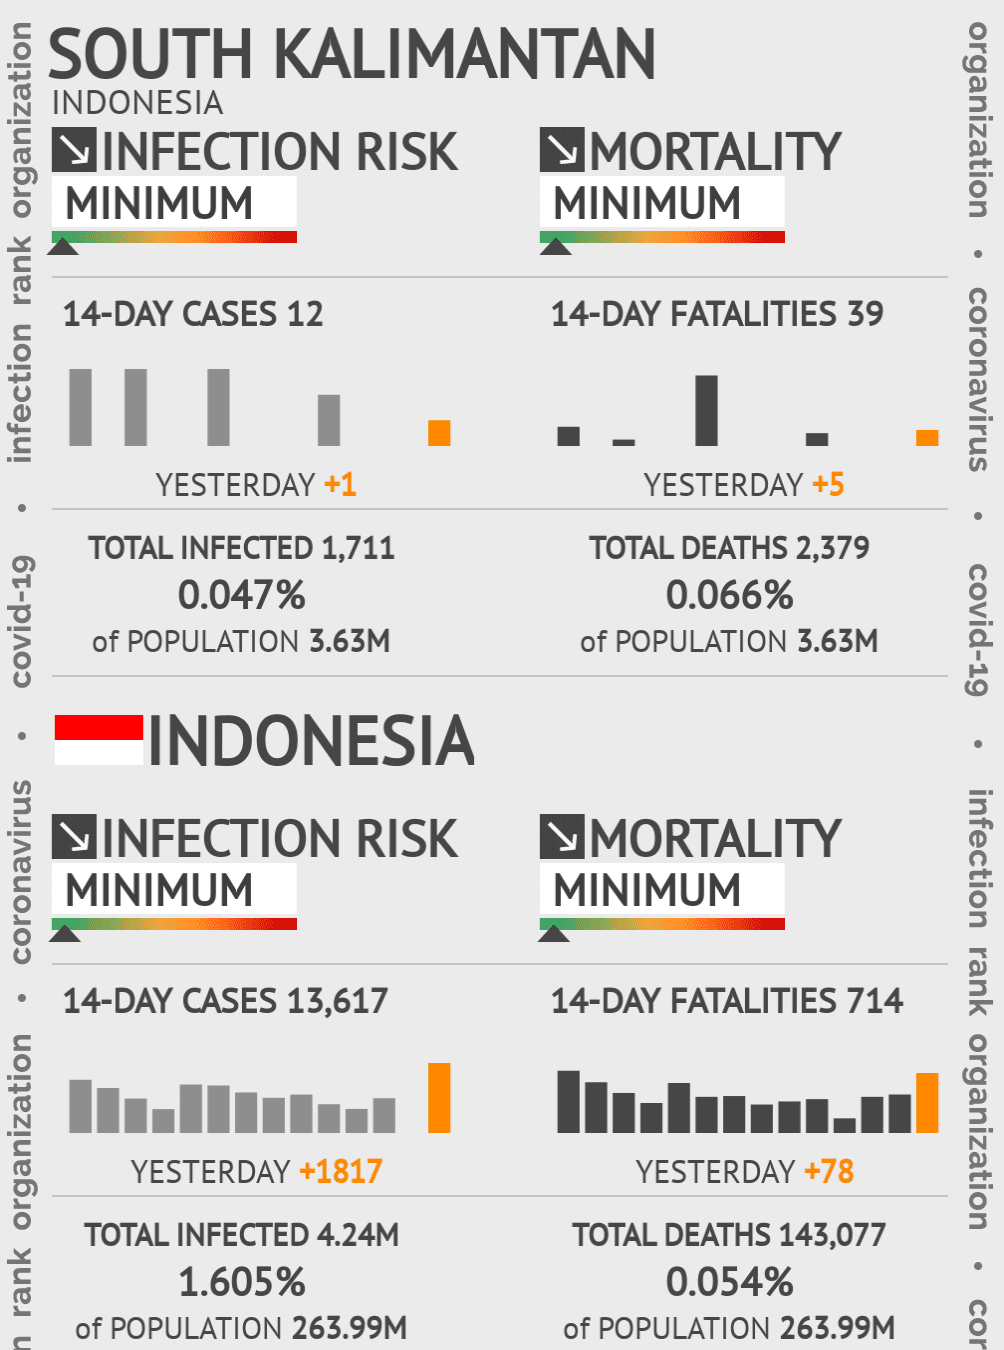 South Kalimantan Coronavirus Covid-19 Risk of Infection on March 09, 2021